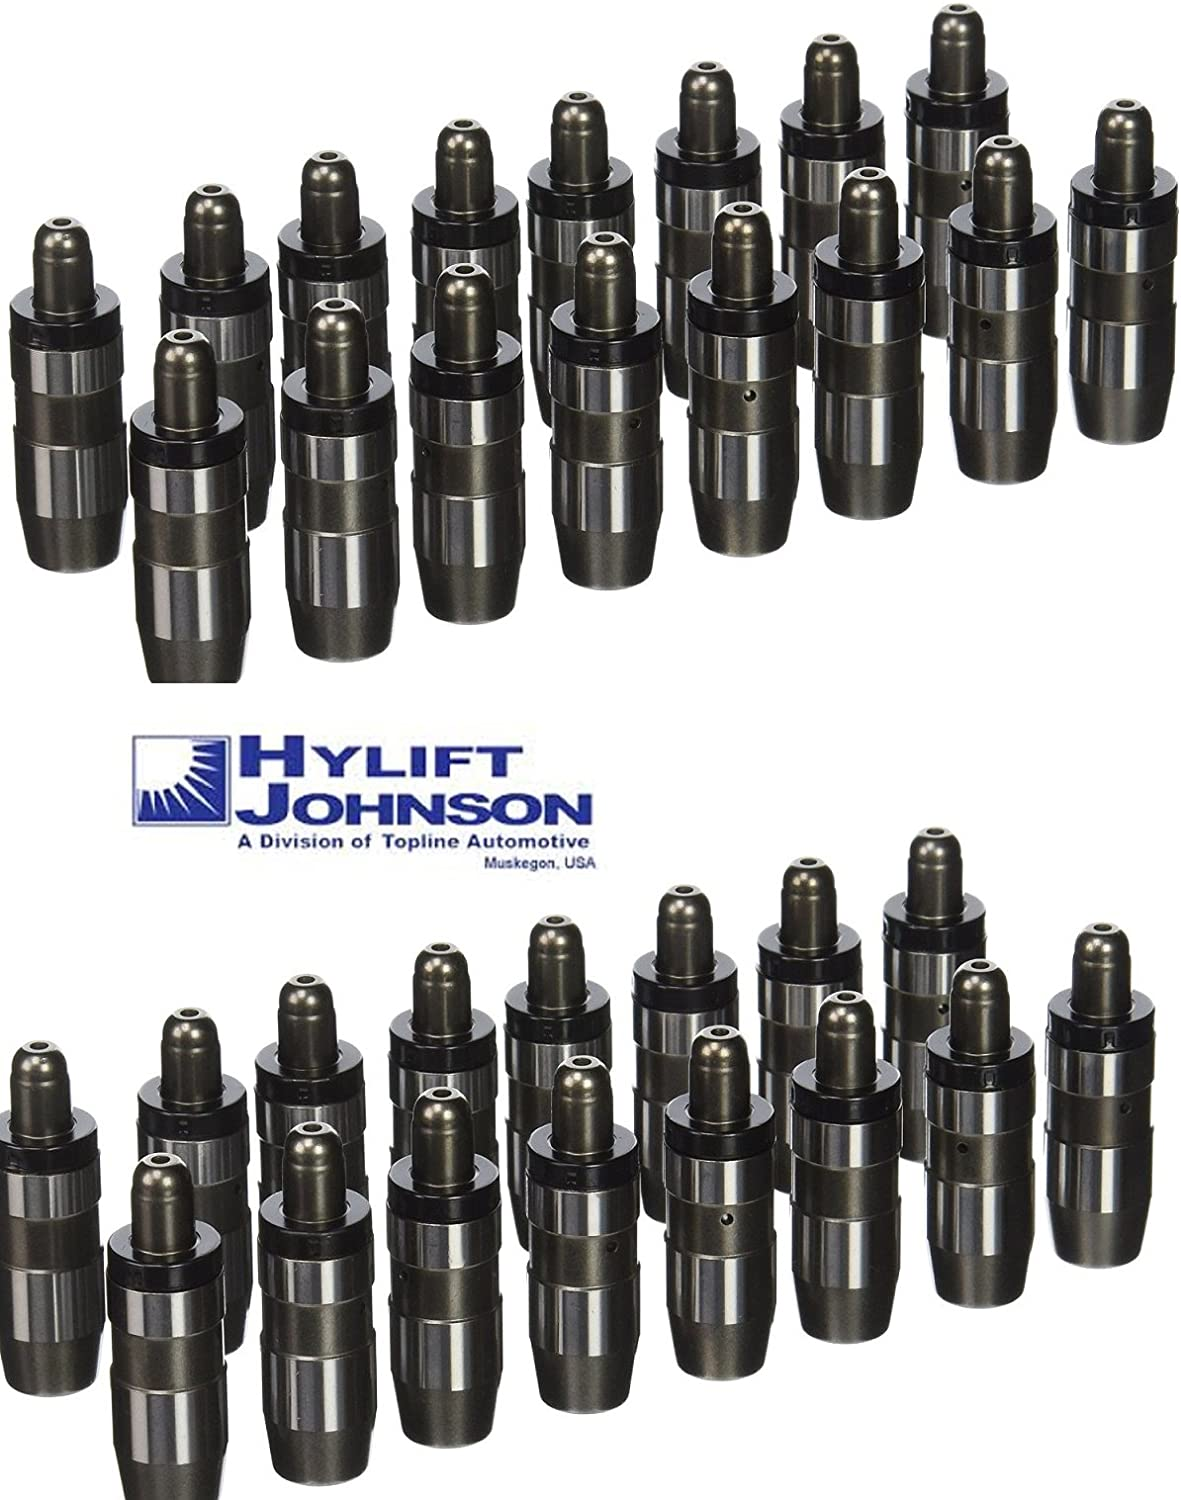 compatible with Ford Mercury 4.6L 4.6 5.4 5.4L DOHC For 32V engines 32 Valve Lifters Set of